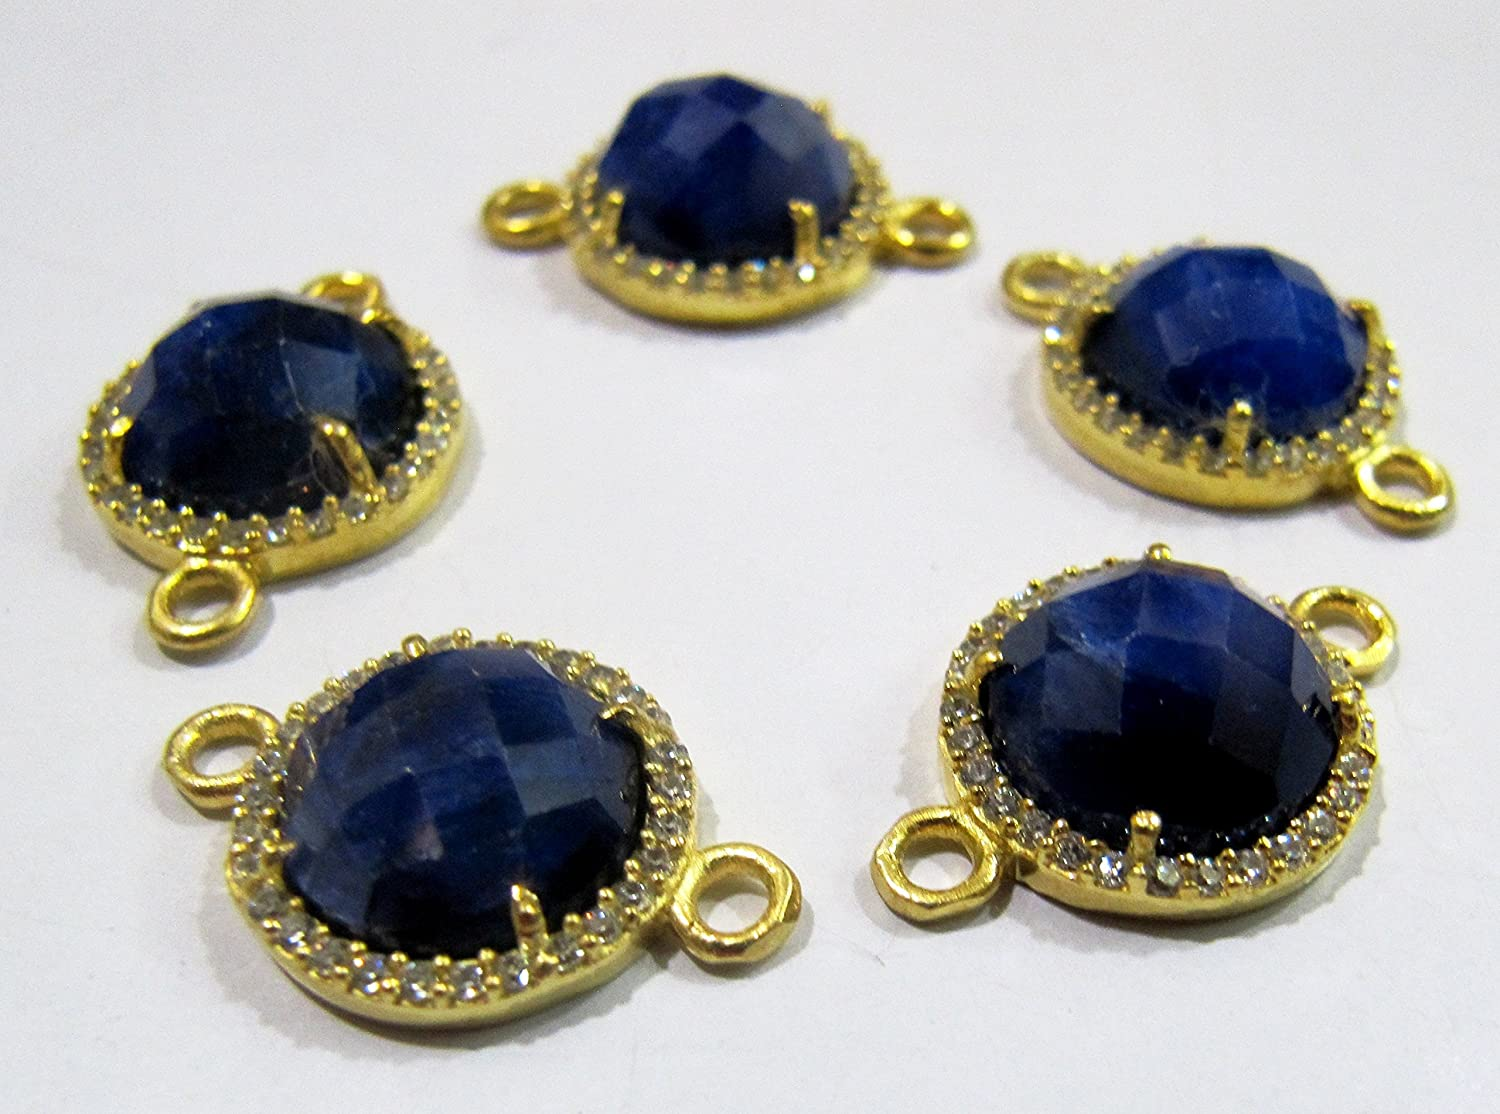 CDBS-166 11 mm Round Double Bail Components Jewelry Charms Briolette Cut Round Shape Ink Blue Chalcedony Gemstone Bezel Connectors